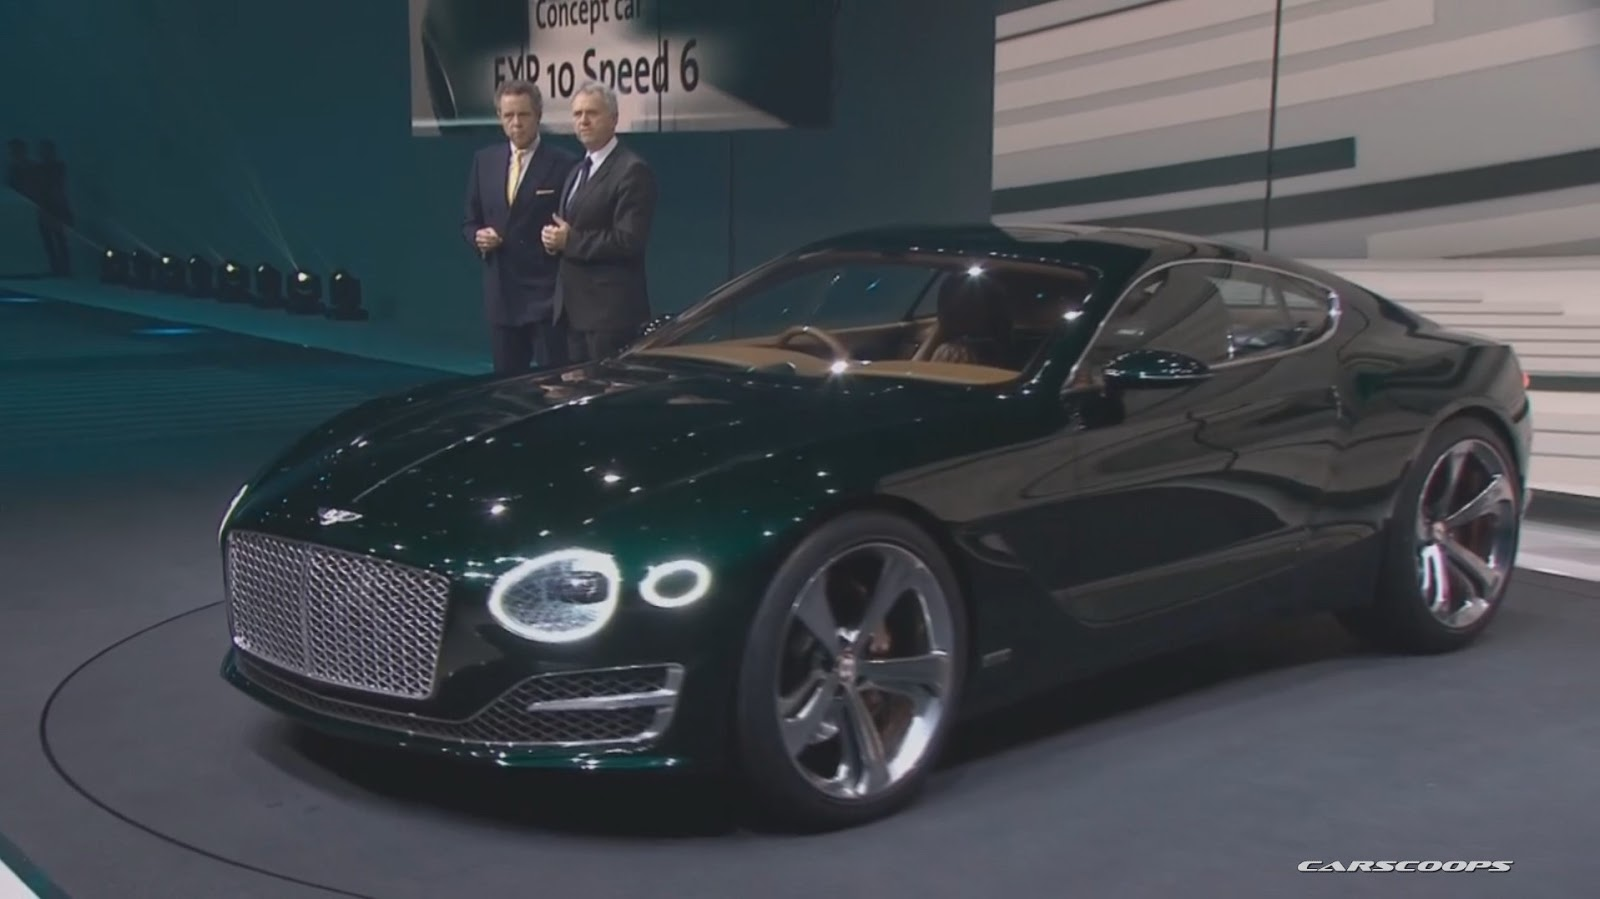 Bentley S New Exp 10 Speed 6 Sports Coupe Concept Hints At